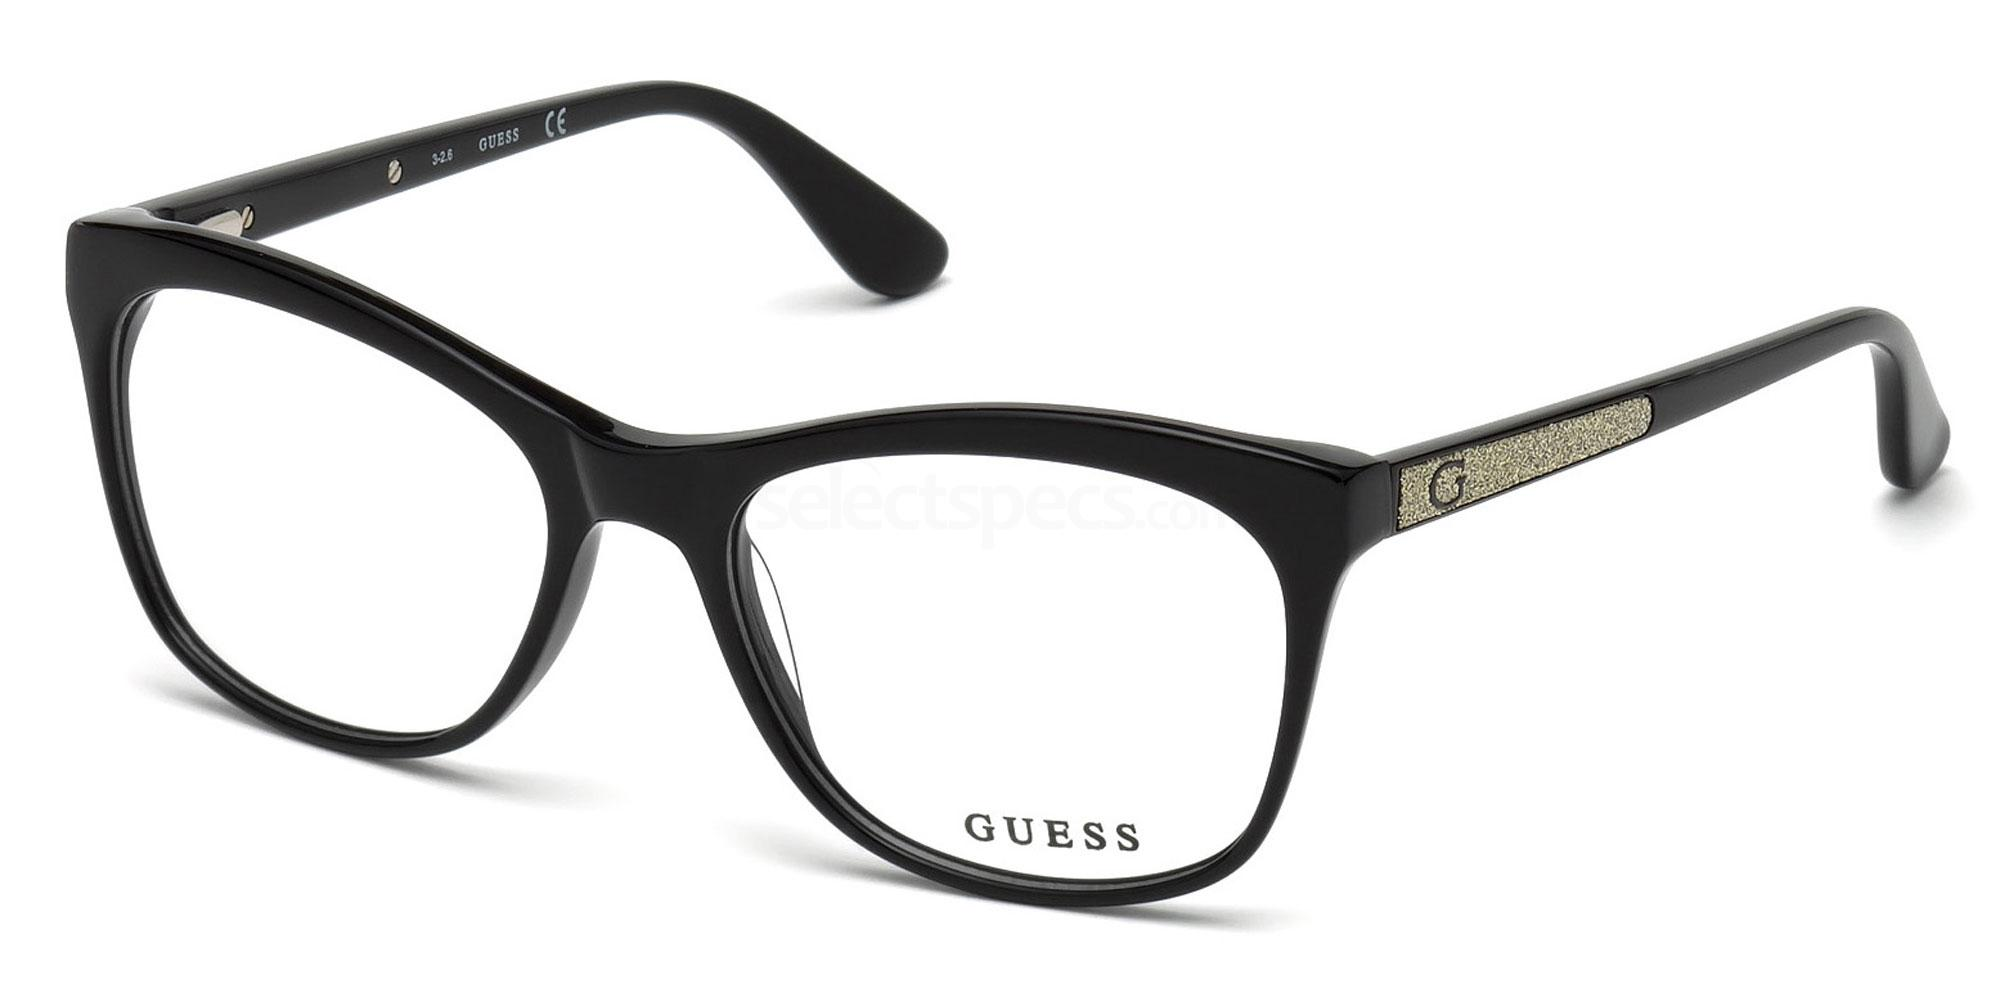 005 GU2619 Glasses, Guess